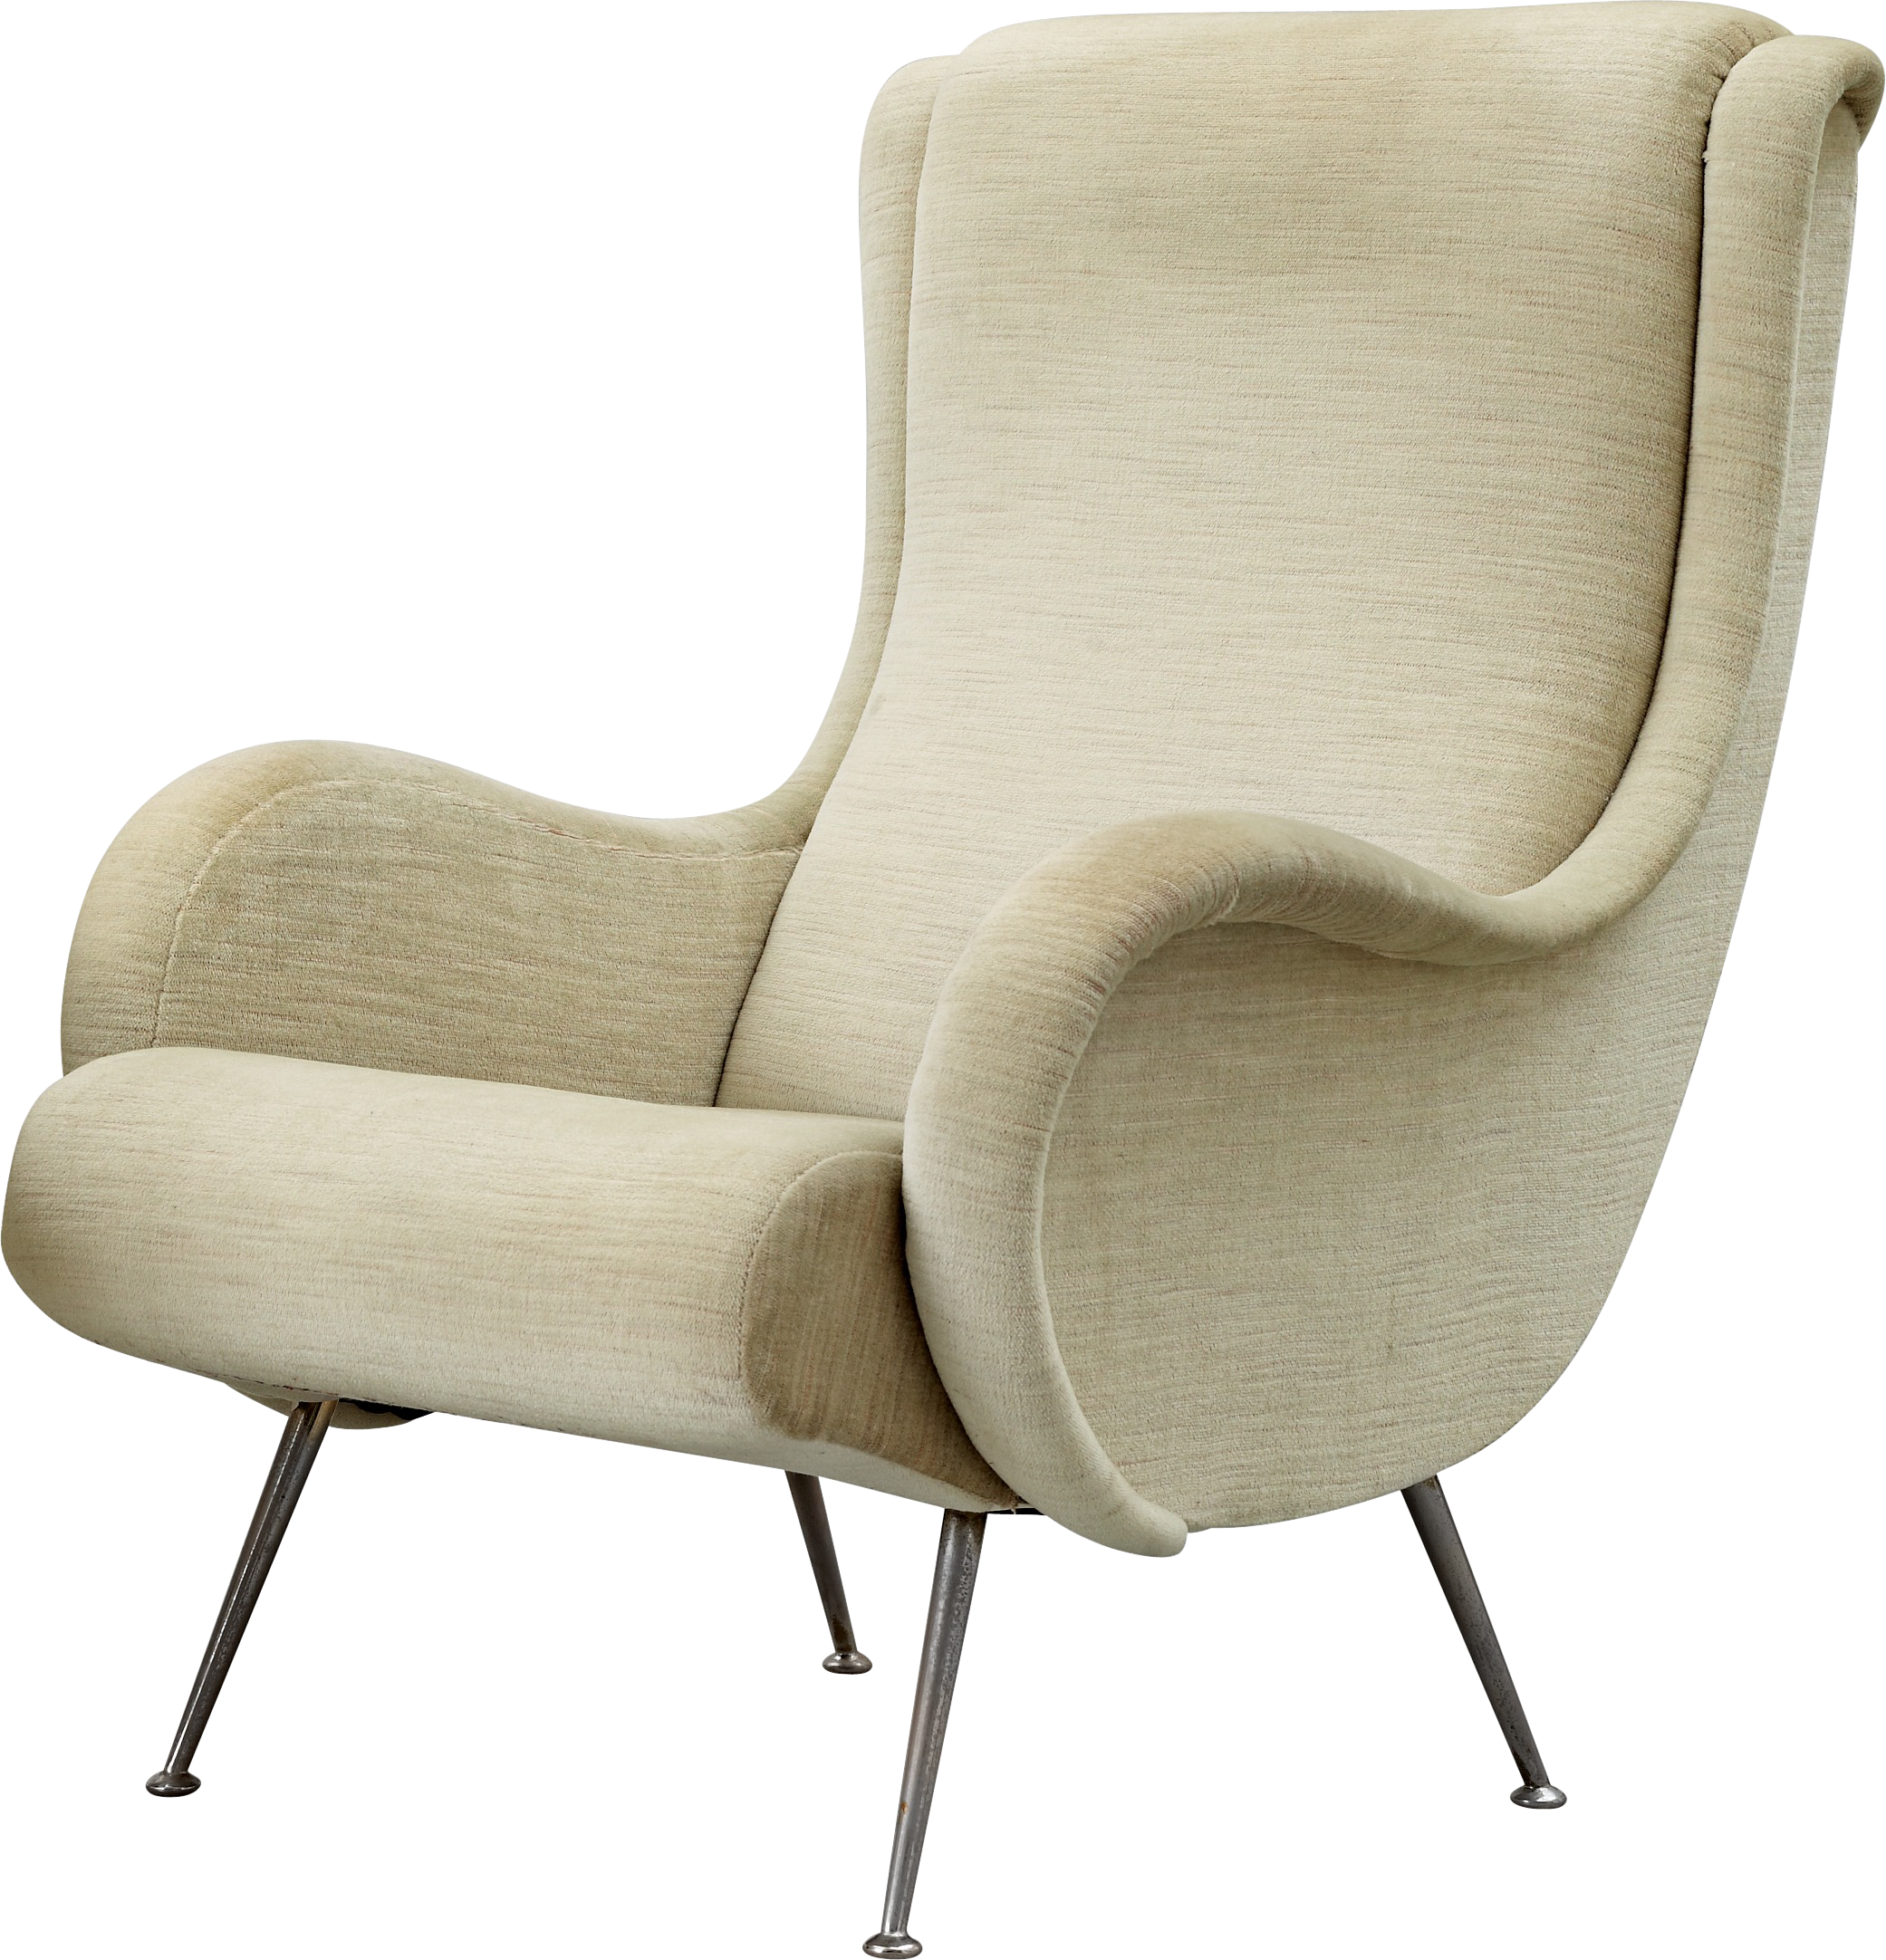 White armchair PNG image - Armchair PNG